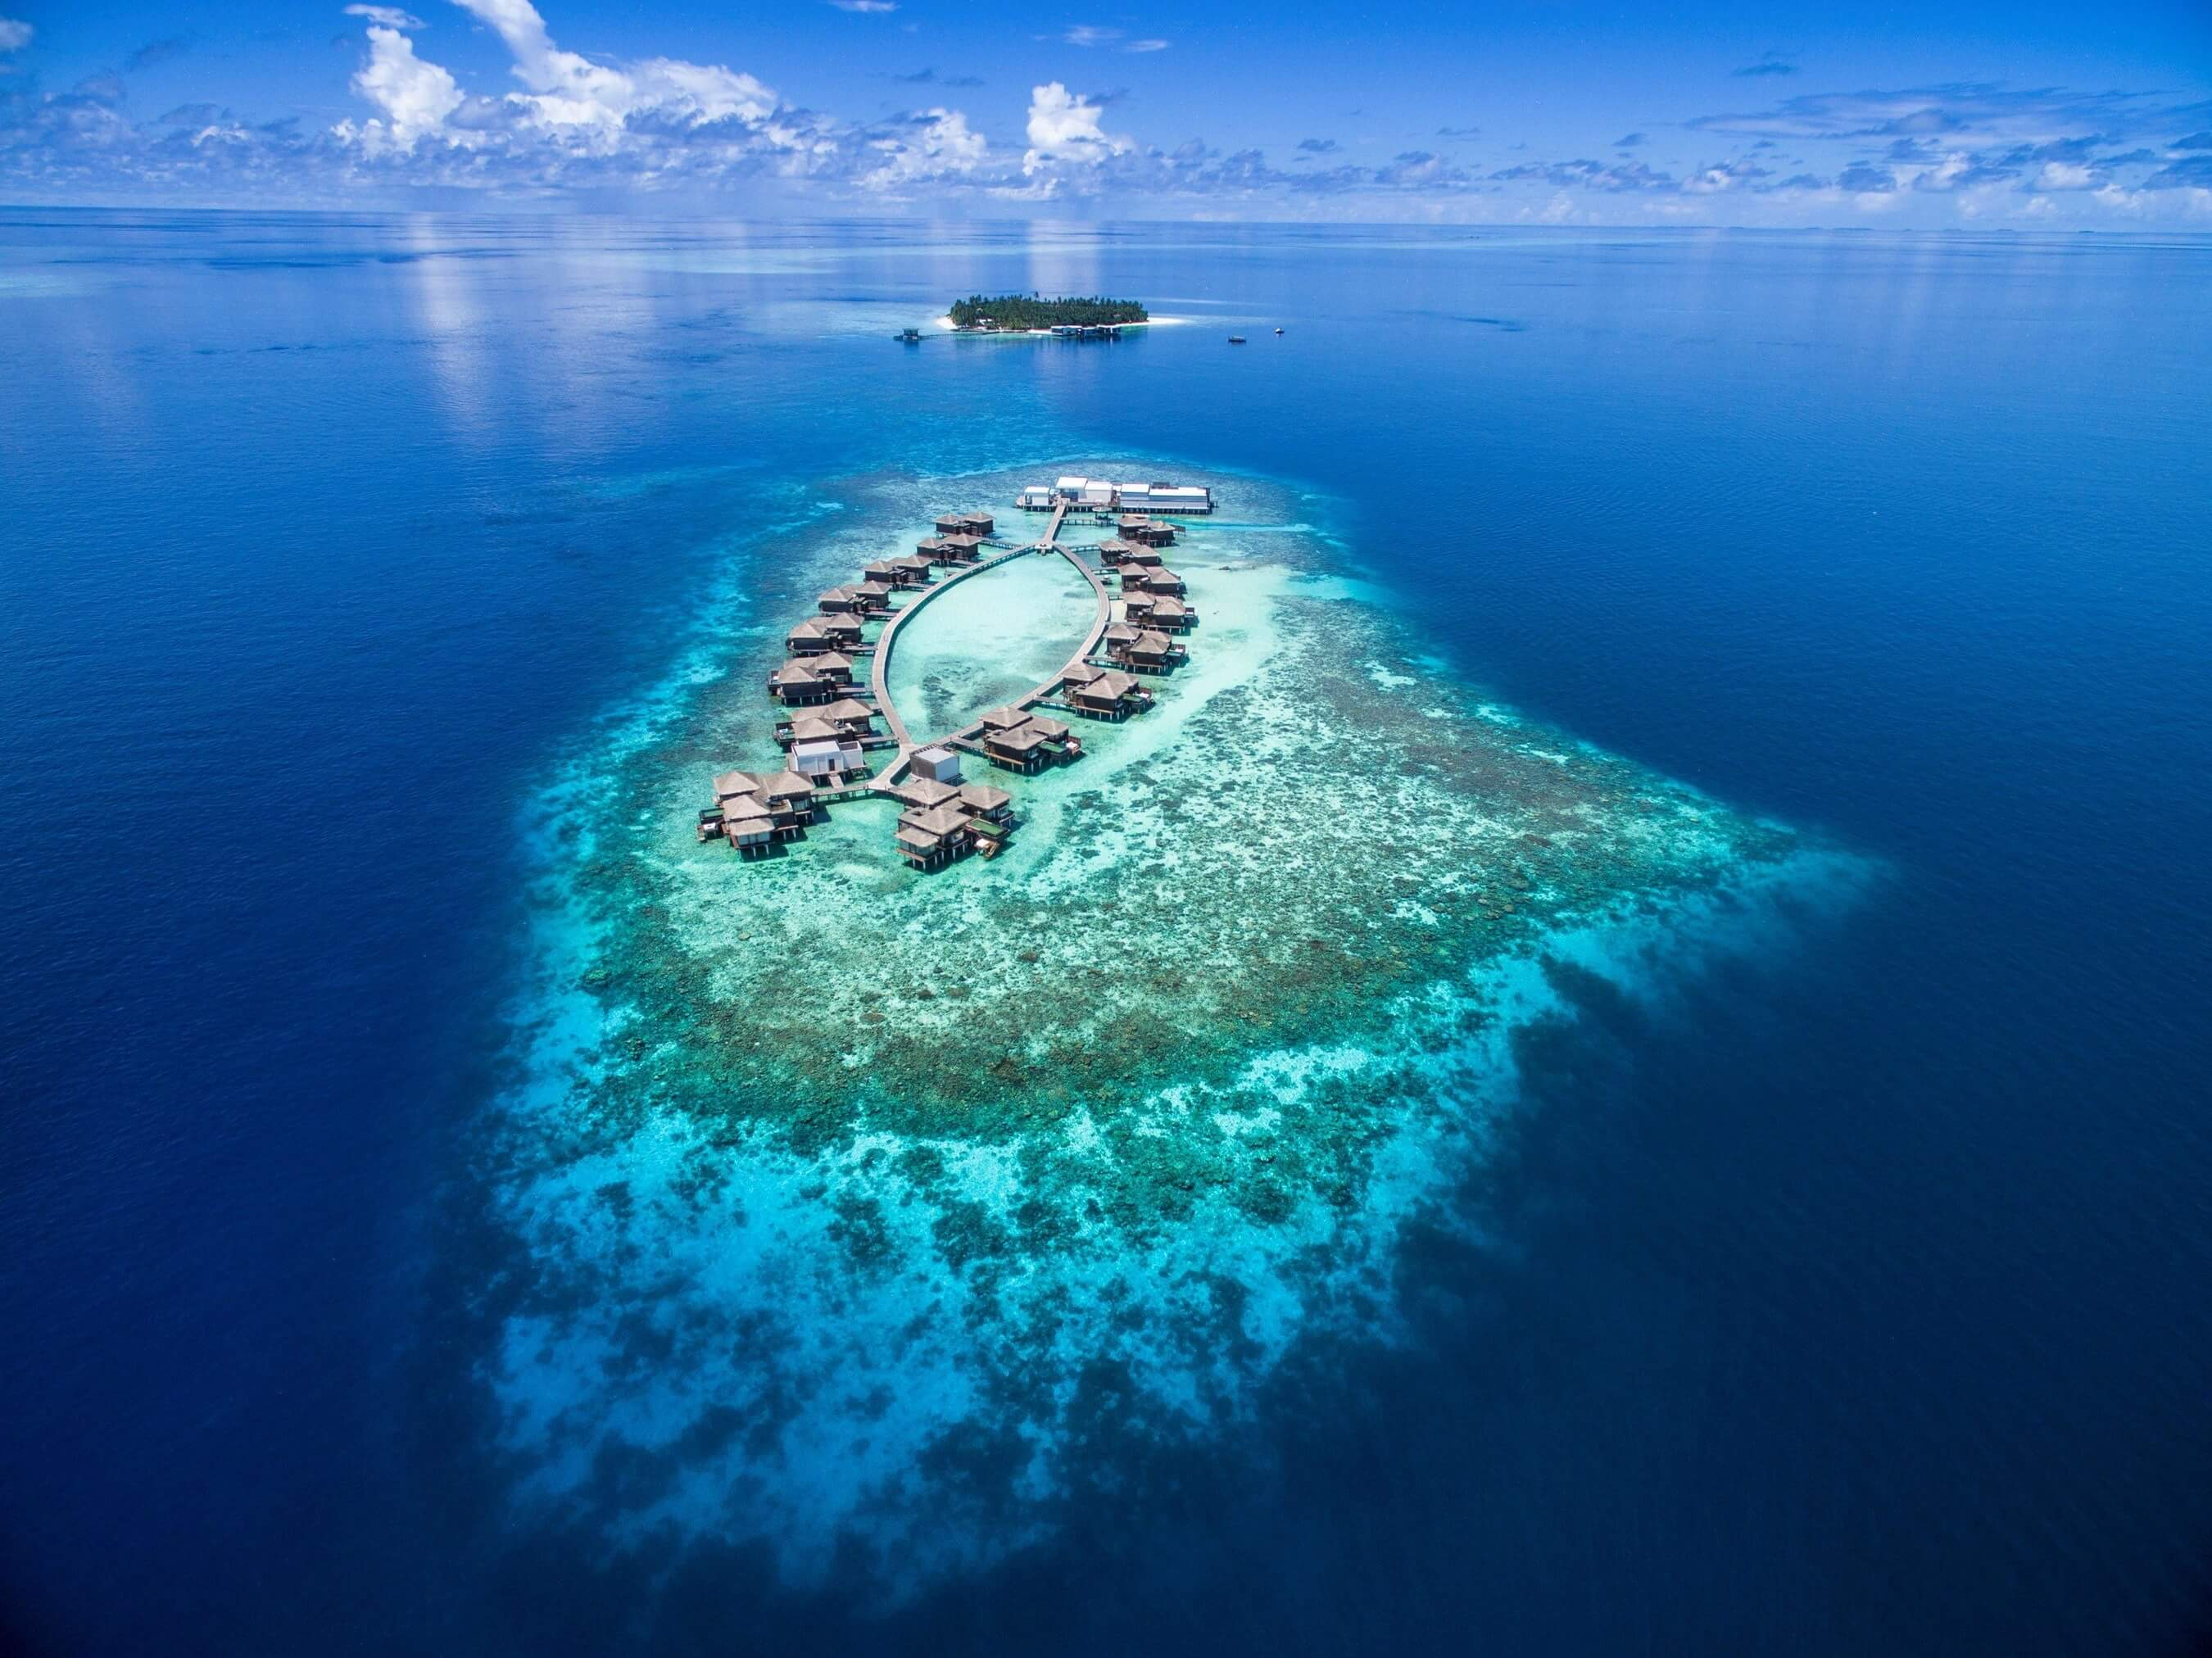 Raffles Hotels & Resorts announces opening of new hotels in China and the Maldives